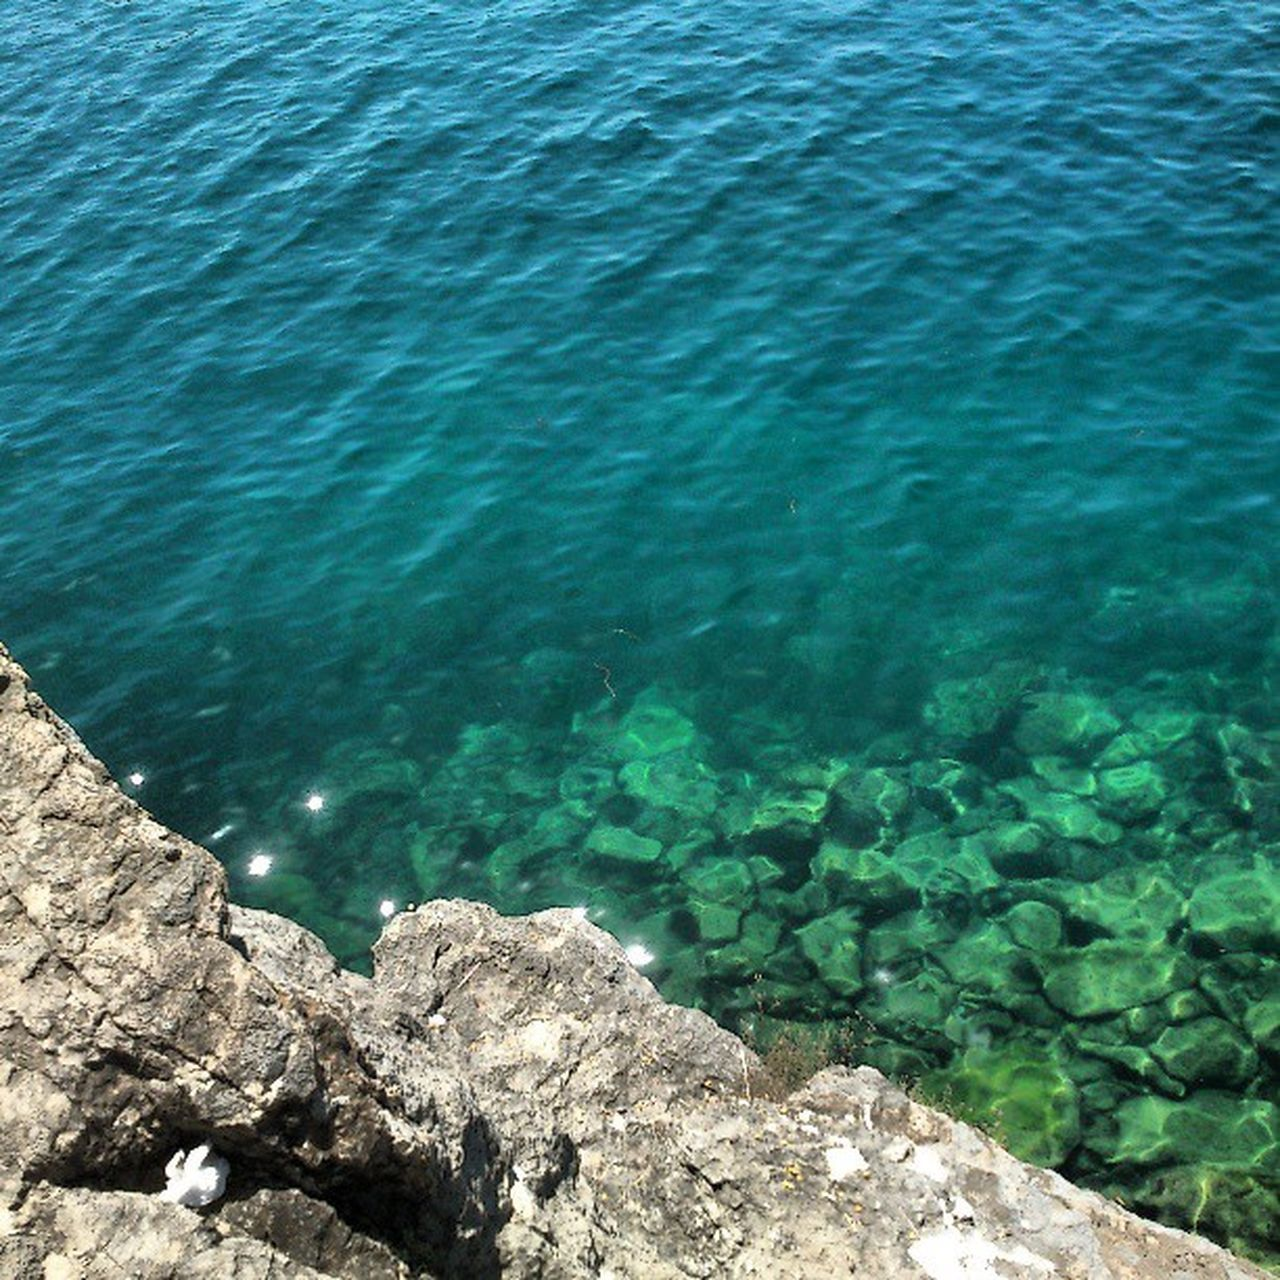 water, sea, high angle view, rock - object, tranquility, beauty in nature, nature, rippled, tranquil scene, blue, scenics, rock, day, rock formation, outdoors, idyllic, no people, sunlight, shore, coastline